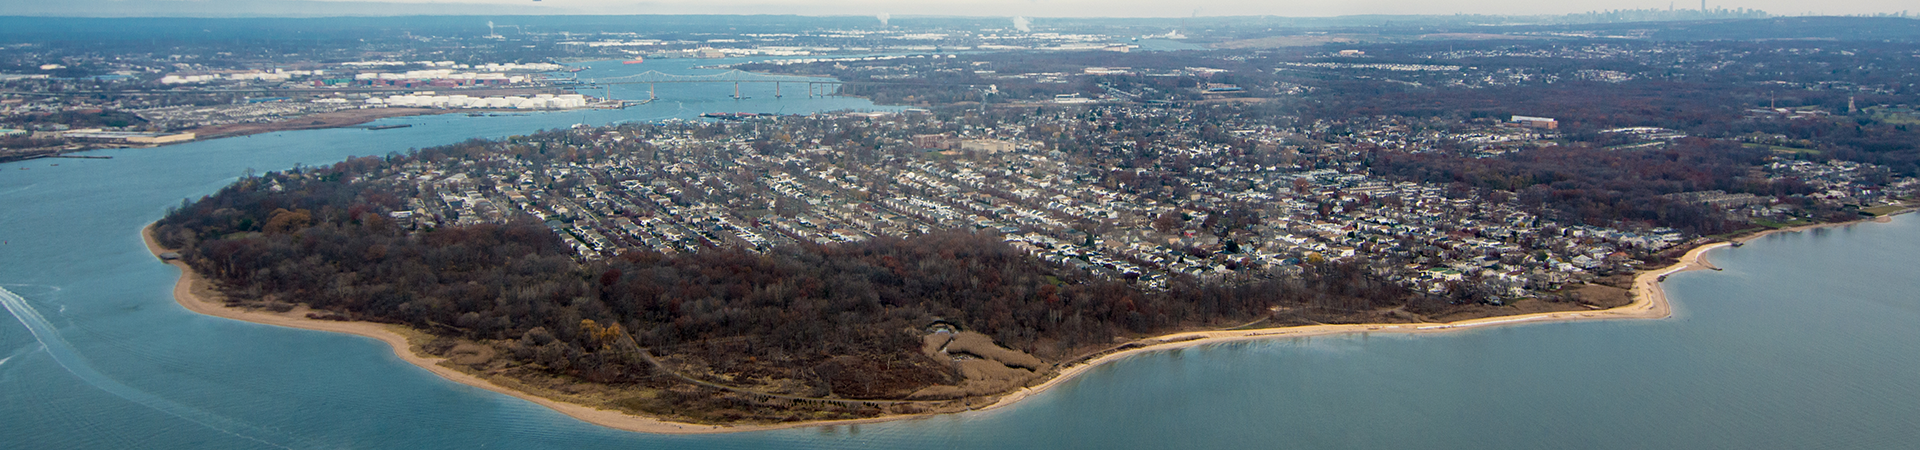 Bird's eye view of Staten Island South Shore